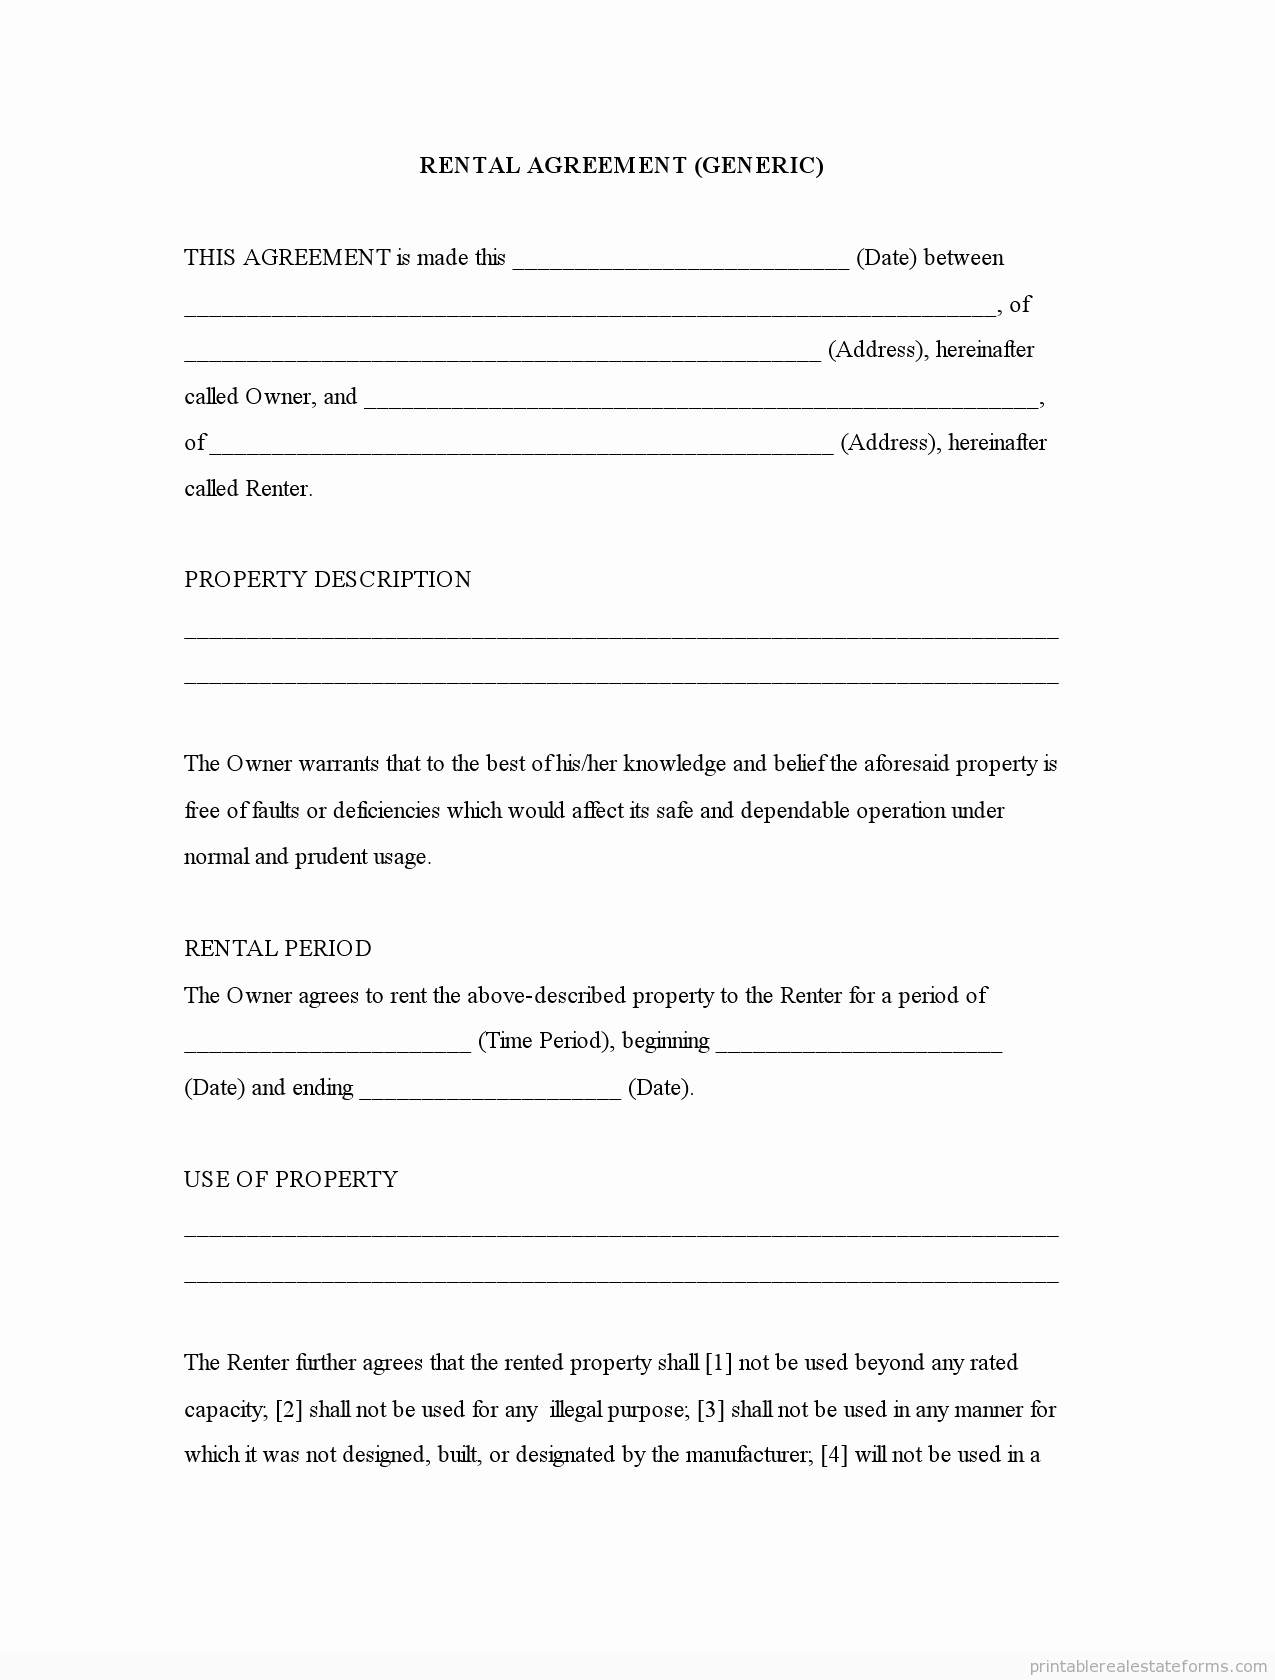 Free Simple Lease Agreement Beautiful Generic Template Rental Agreement forms Free Printable